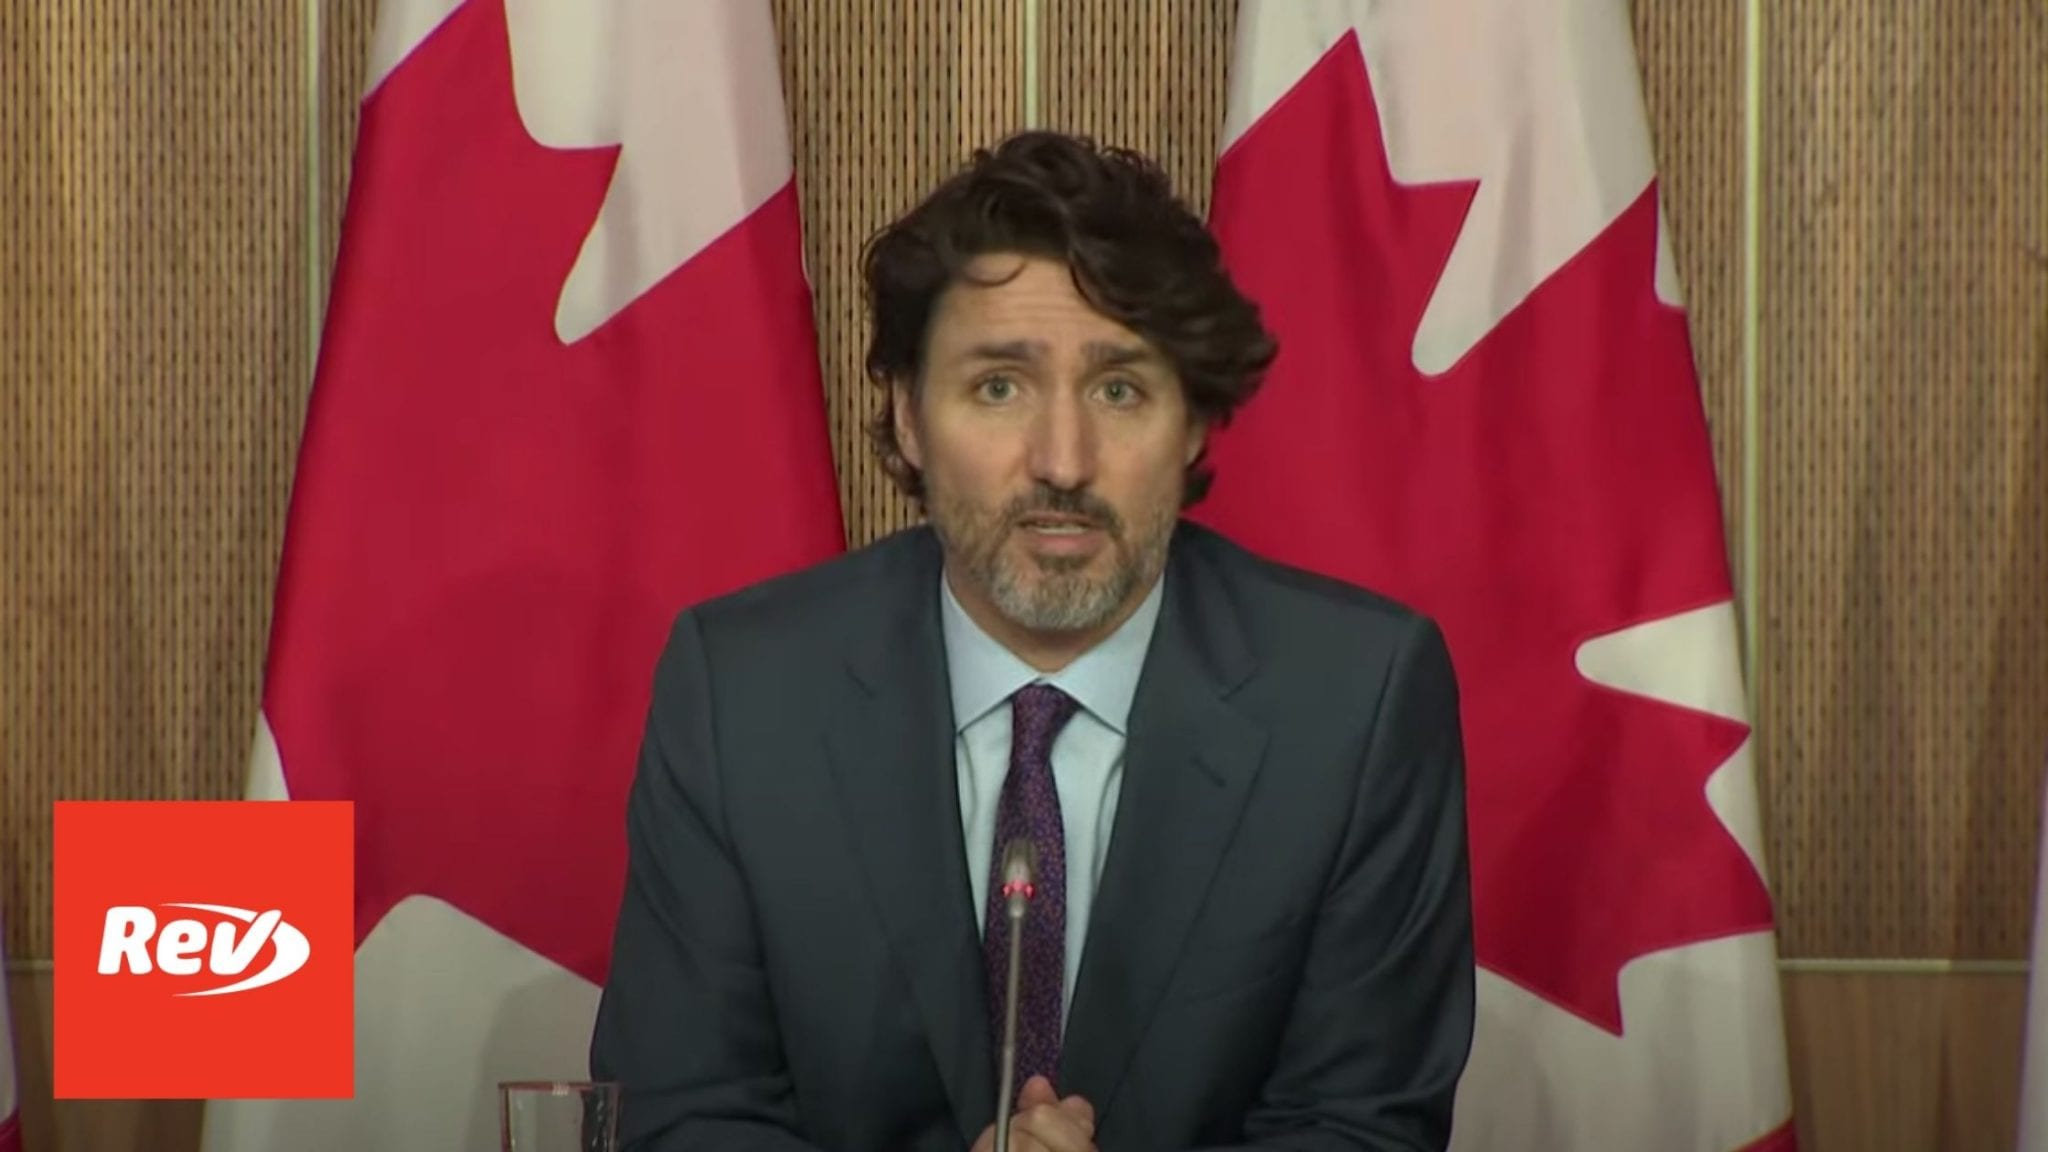 Justin Trudeau Canada COVID-19 Press Conference Transcript May 4